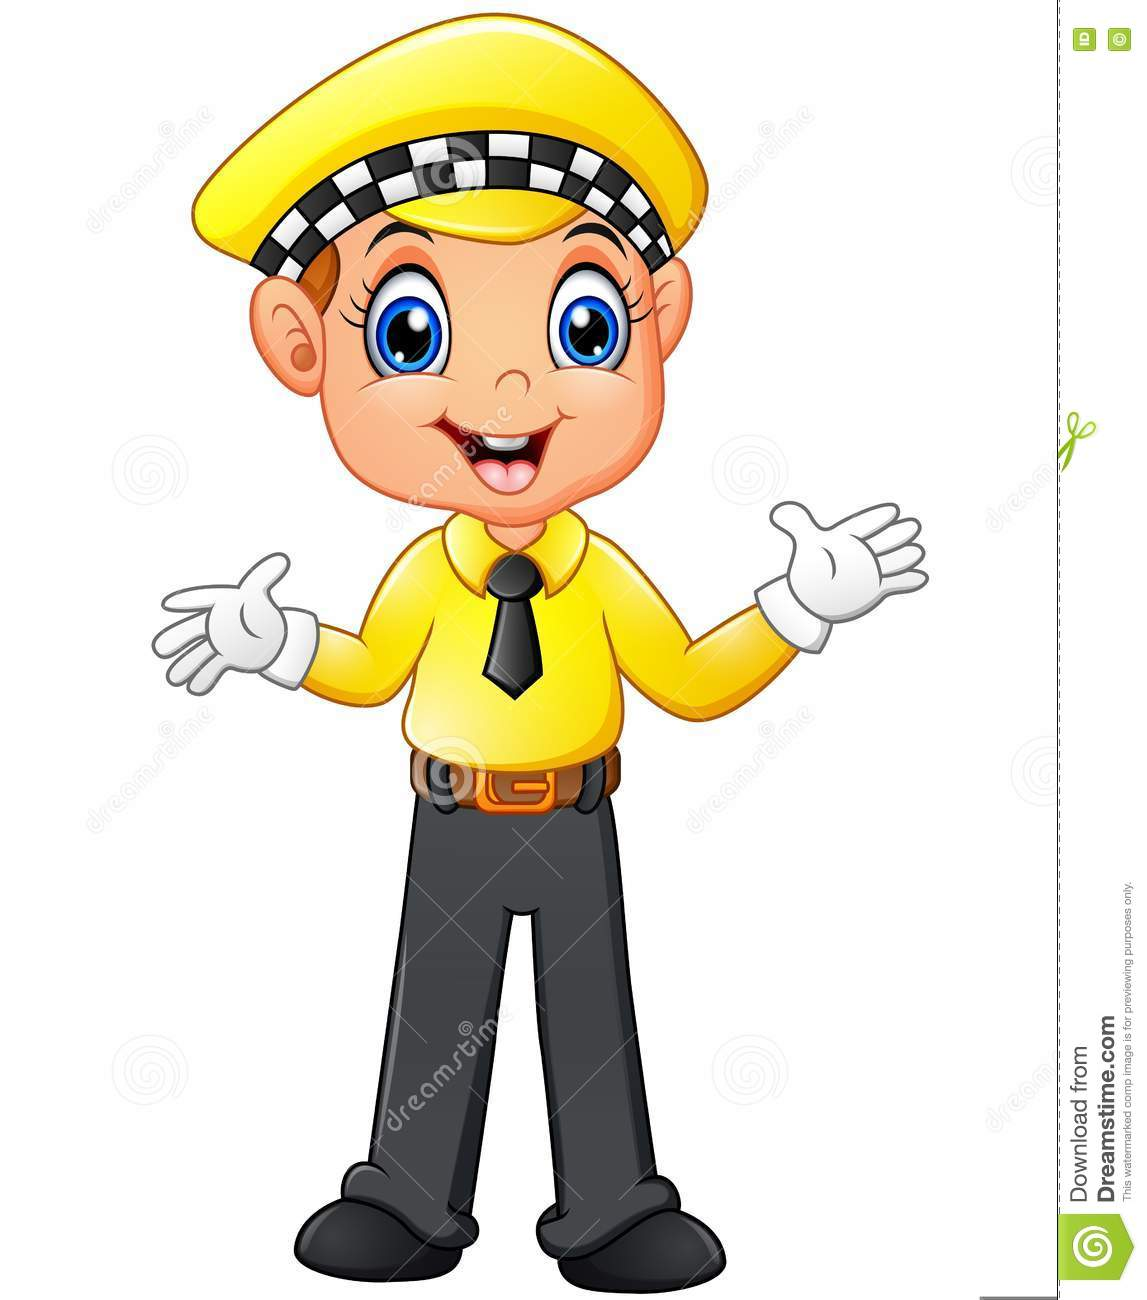 cartoon taxi vector illustration cartoondealer com 18295216 police station clipart images indian police station clipart